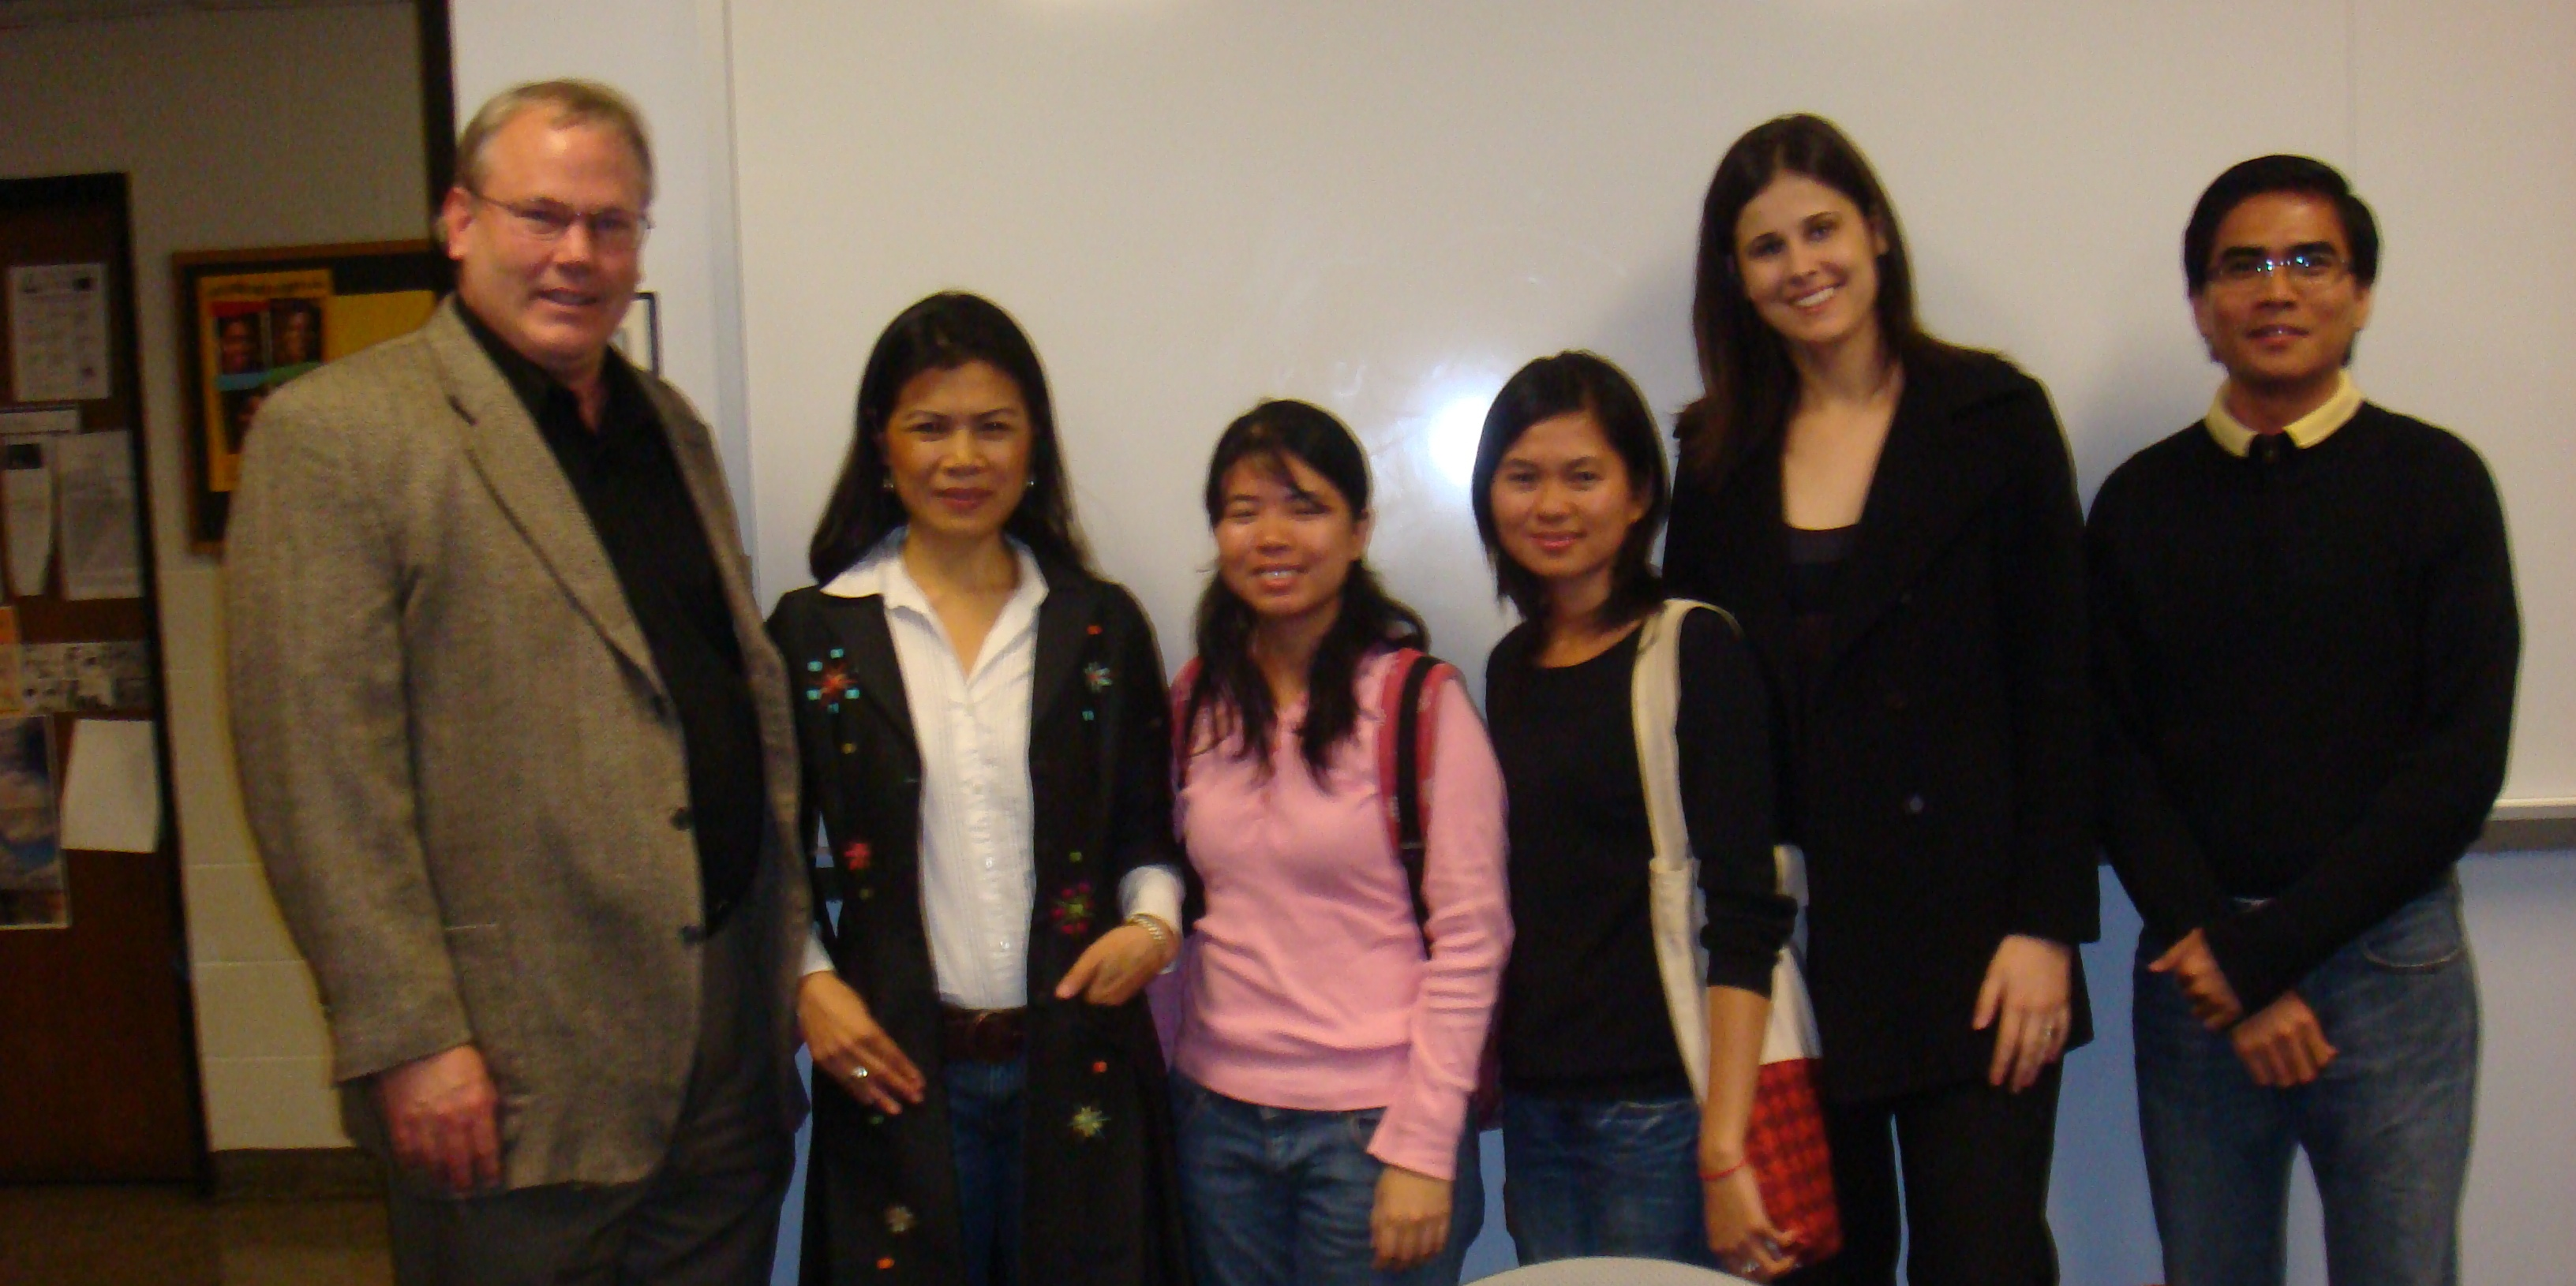 Theary Seng at Alex Hinton's seminar, photos with Khmer students, 1 April 2010, Rutgers University